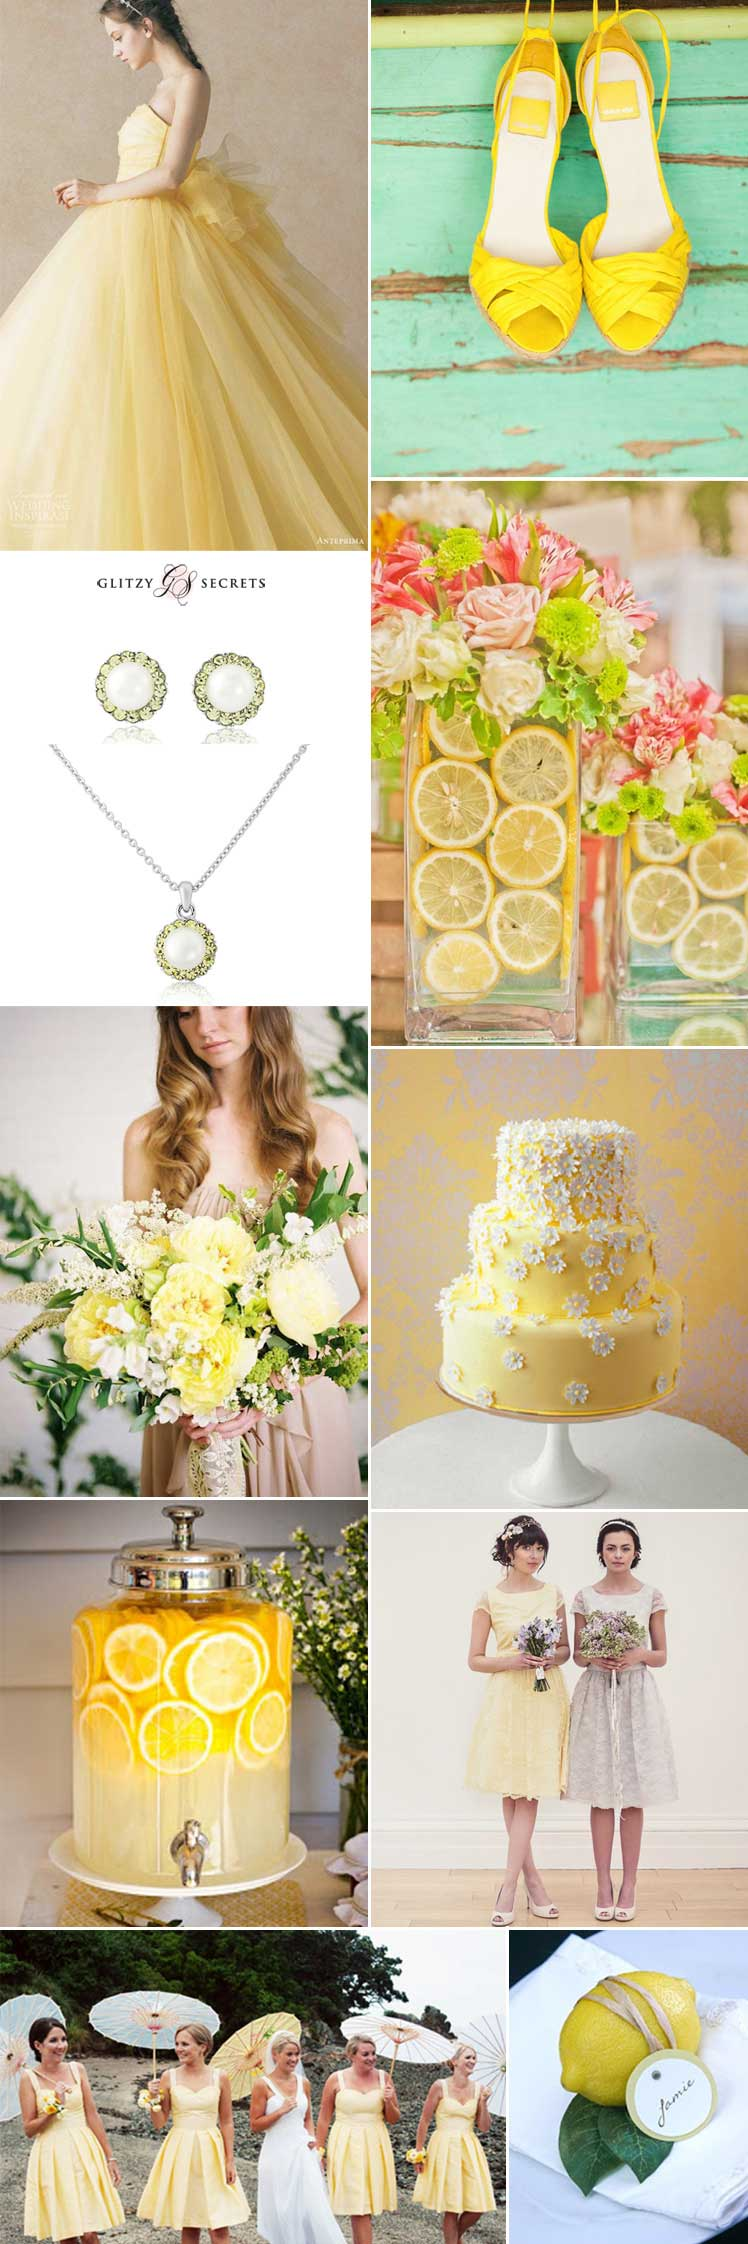 Lemon sorbet wedding ideas